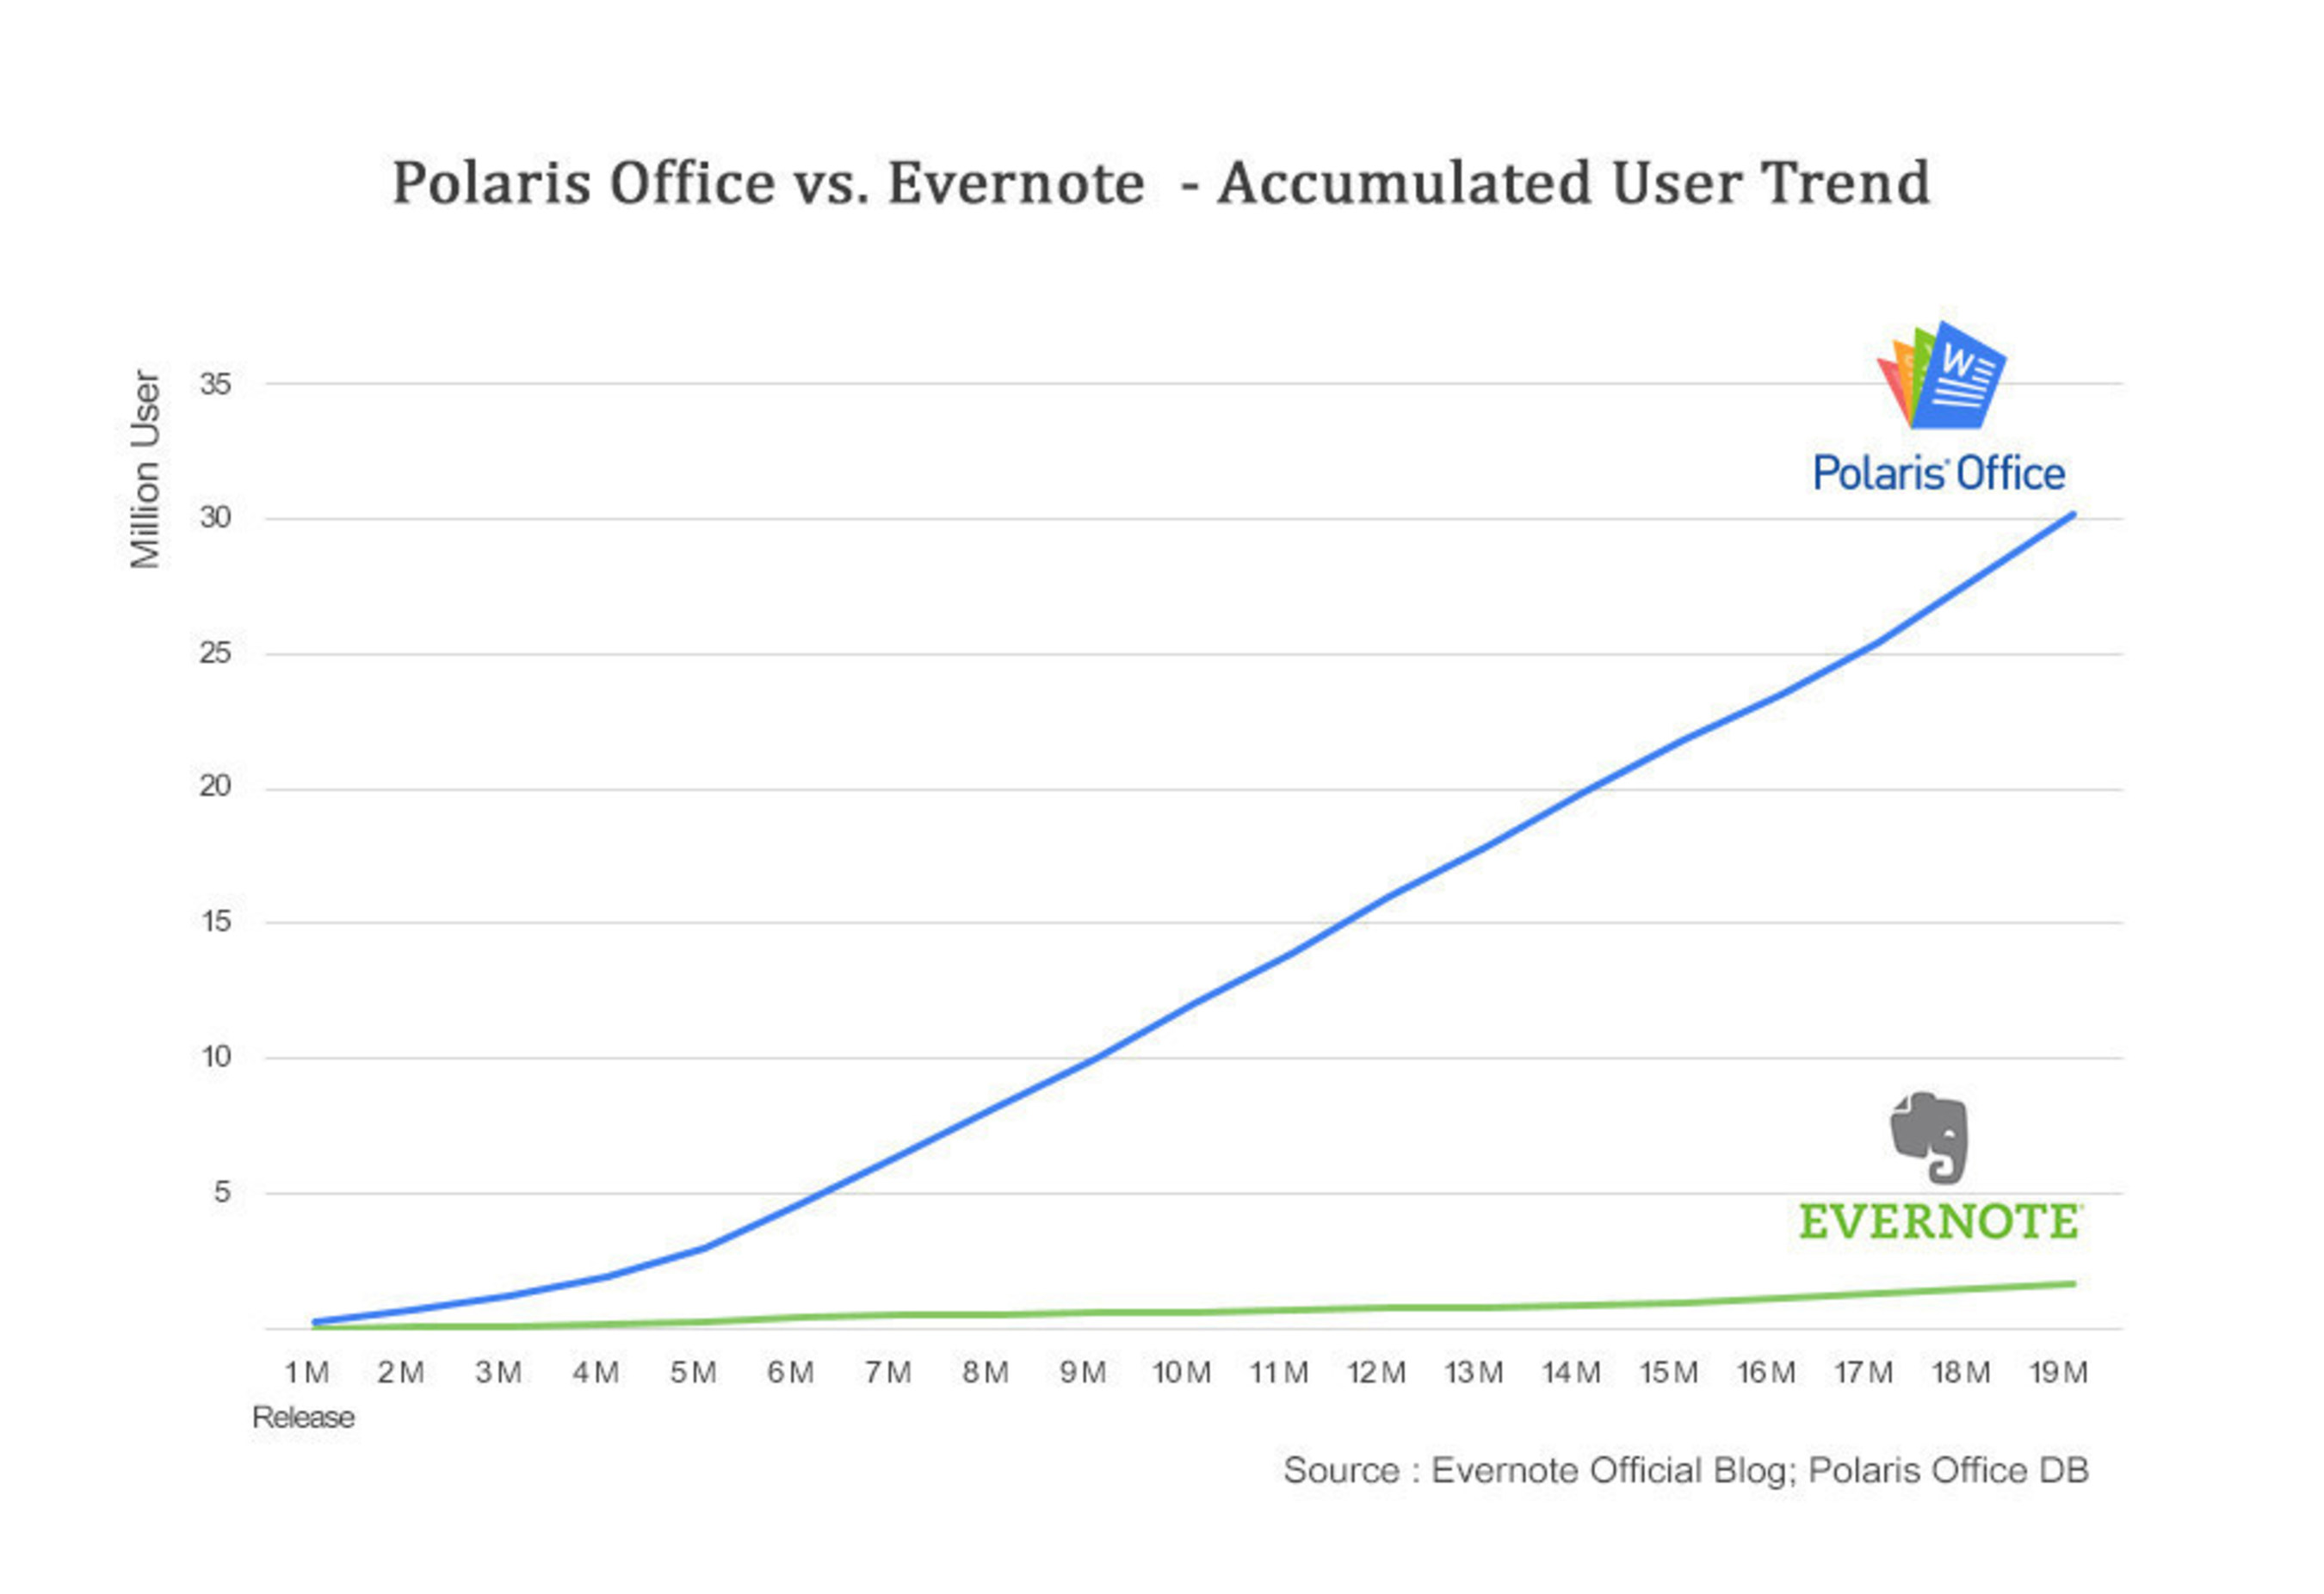 Polaris Office Grows 18 Times Faster than Evernote